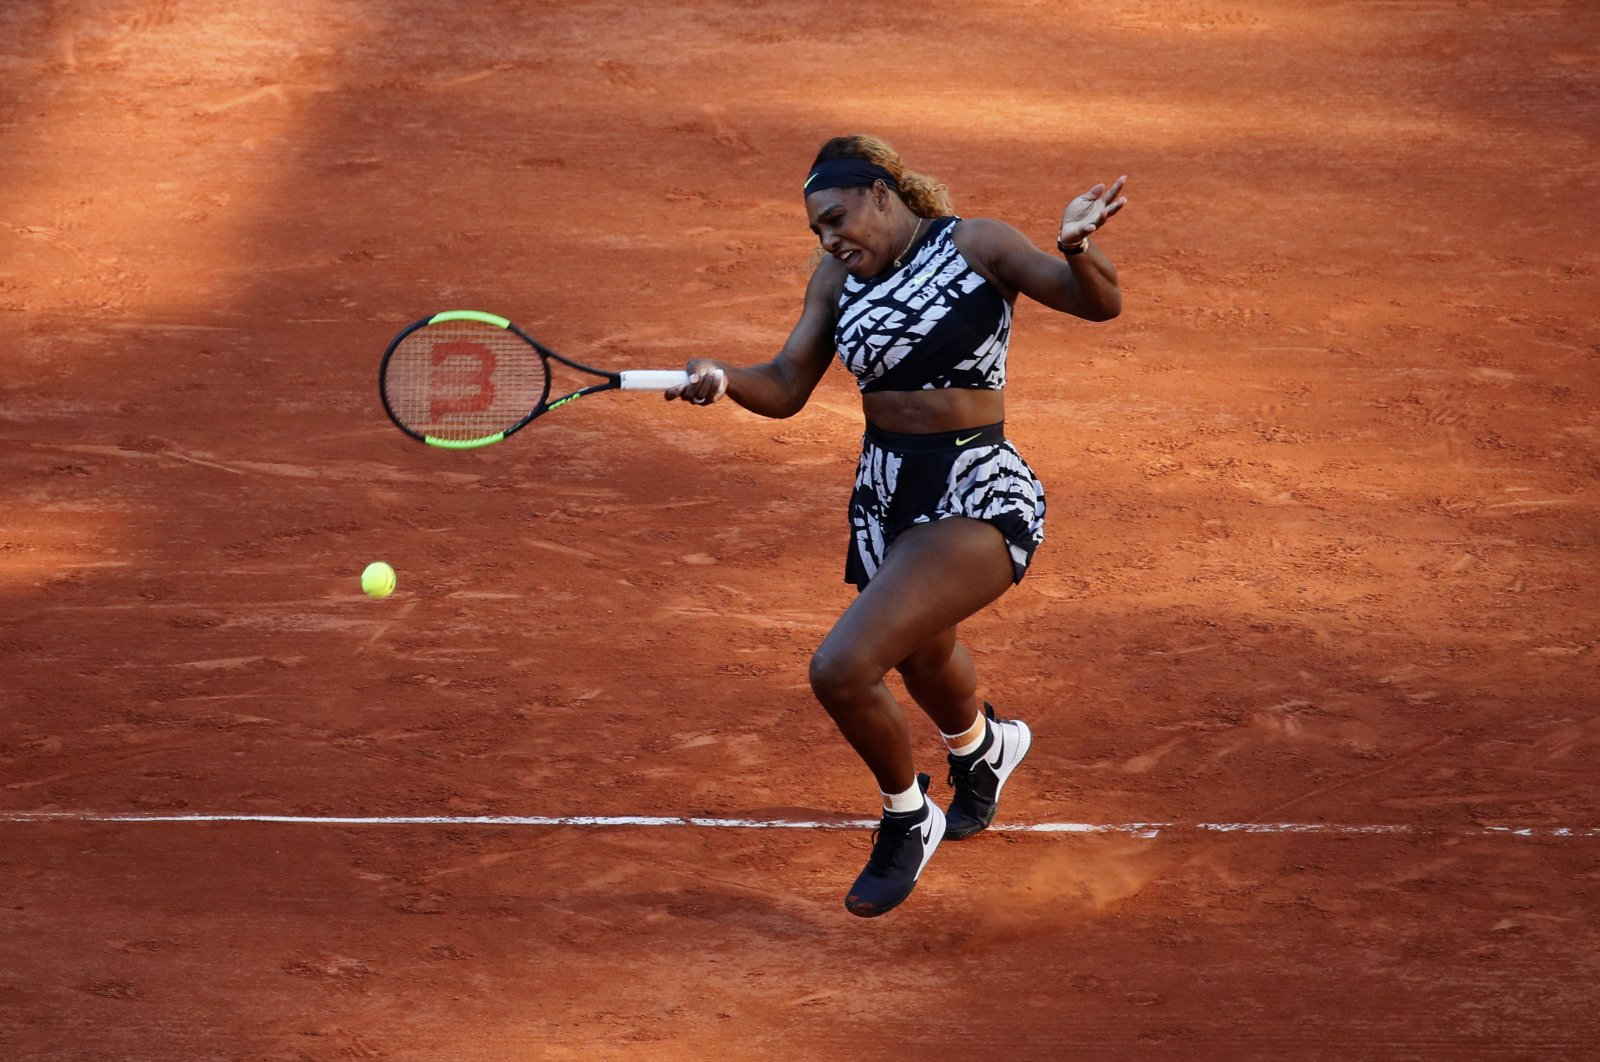 Serena Williams plays a shot against Sofia Kenin during a French Open tennis match in Paris, France, June 1, 2019. (AP Photo)